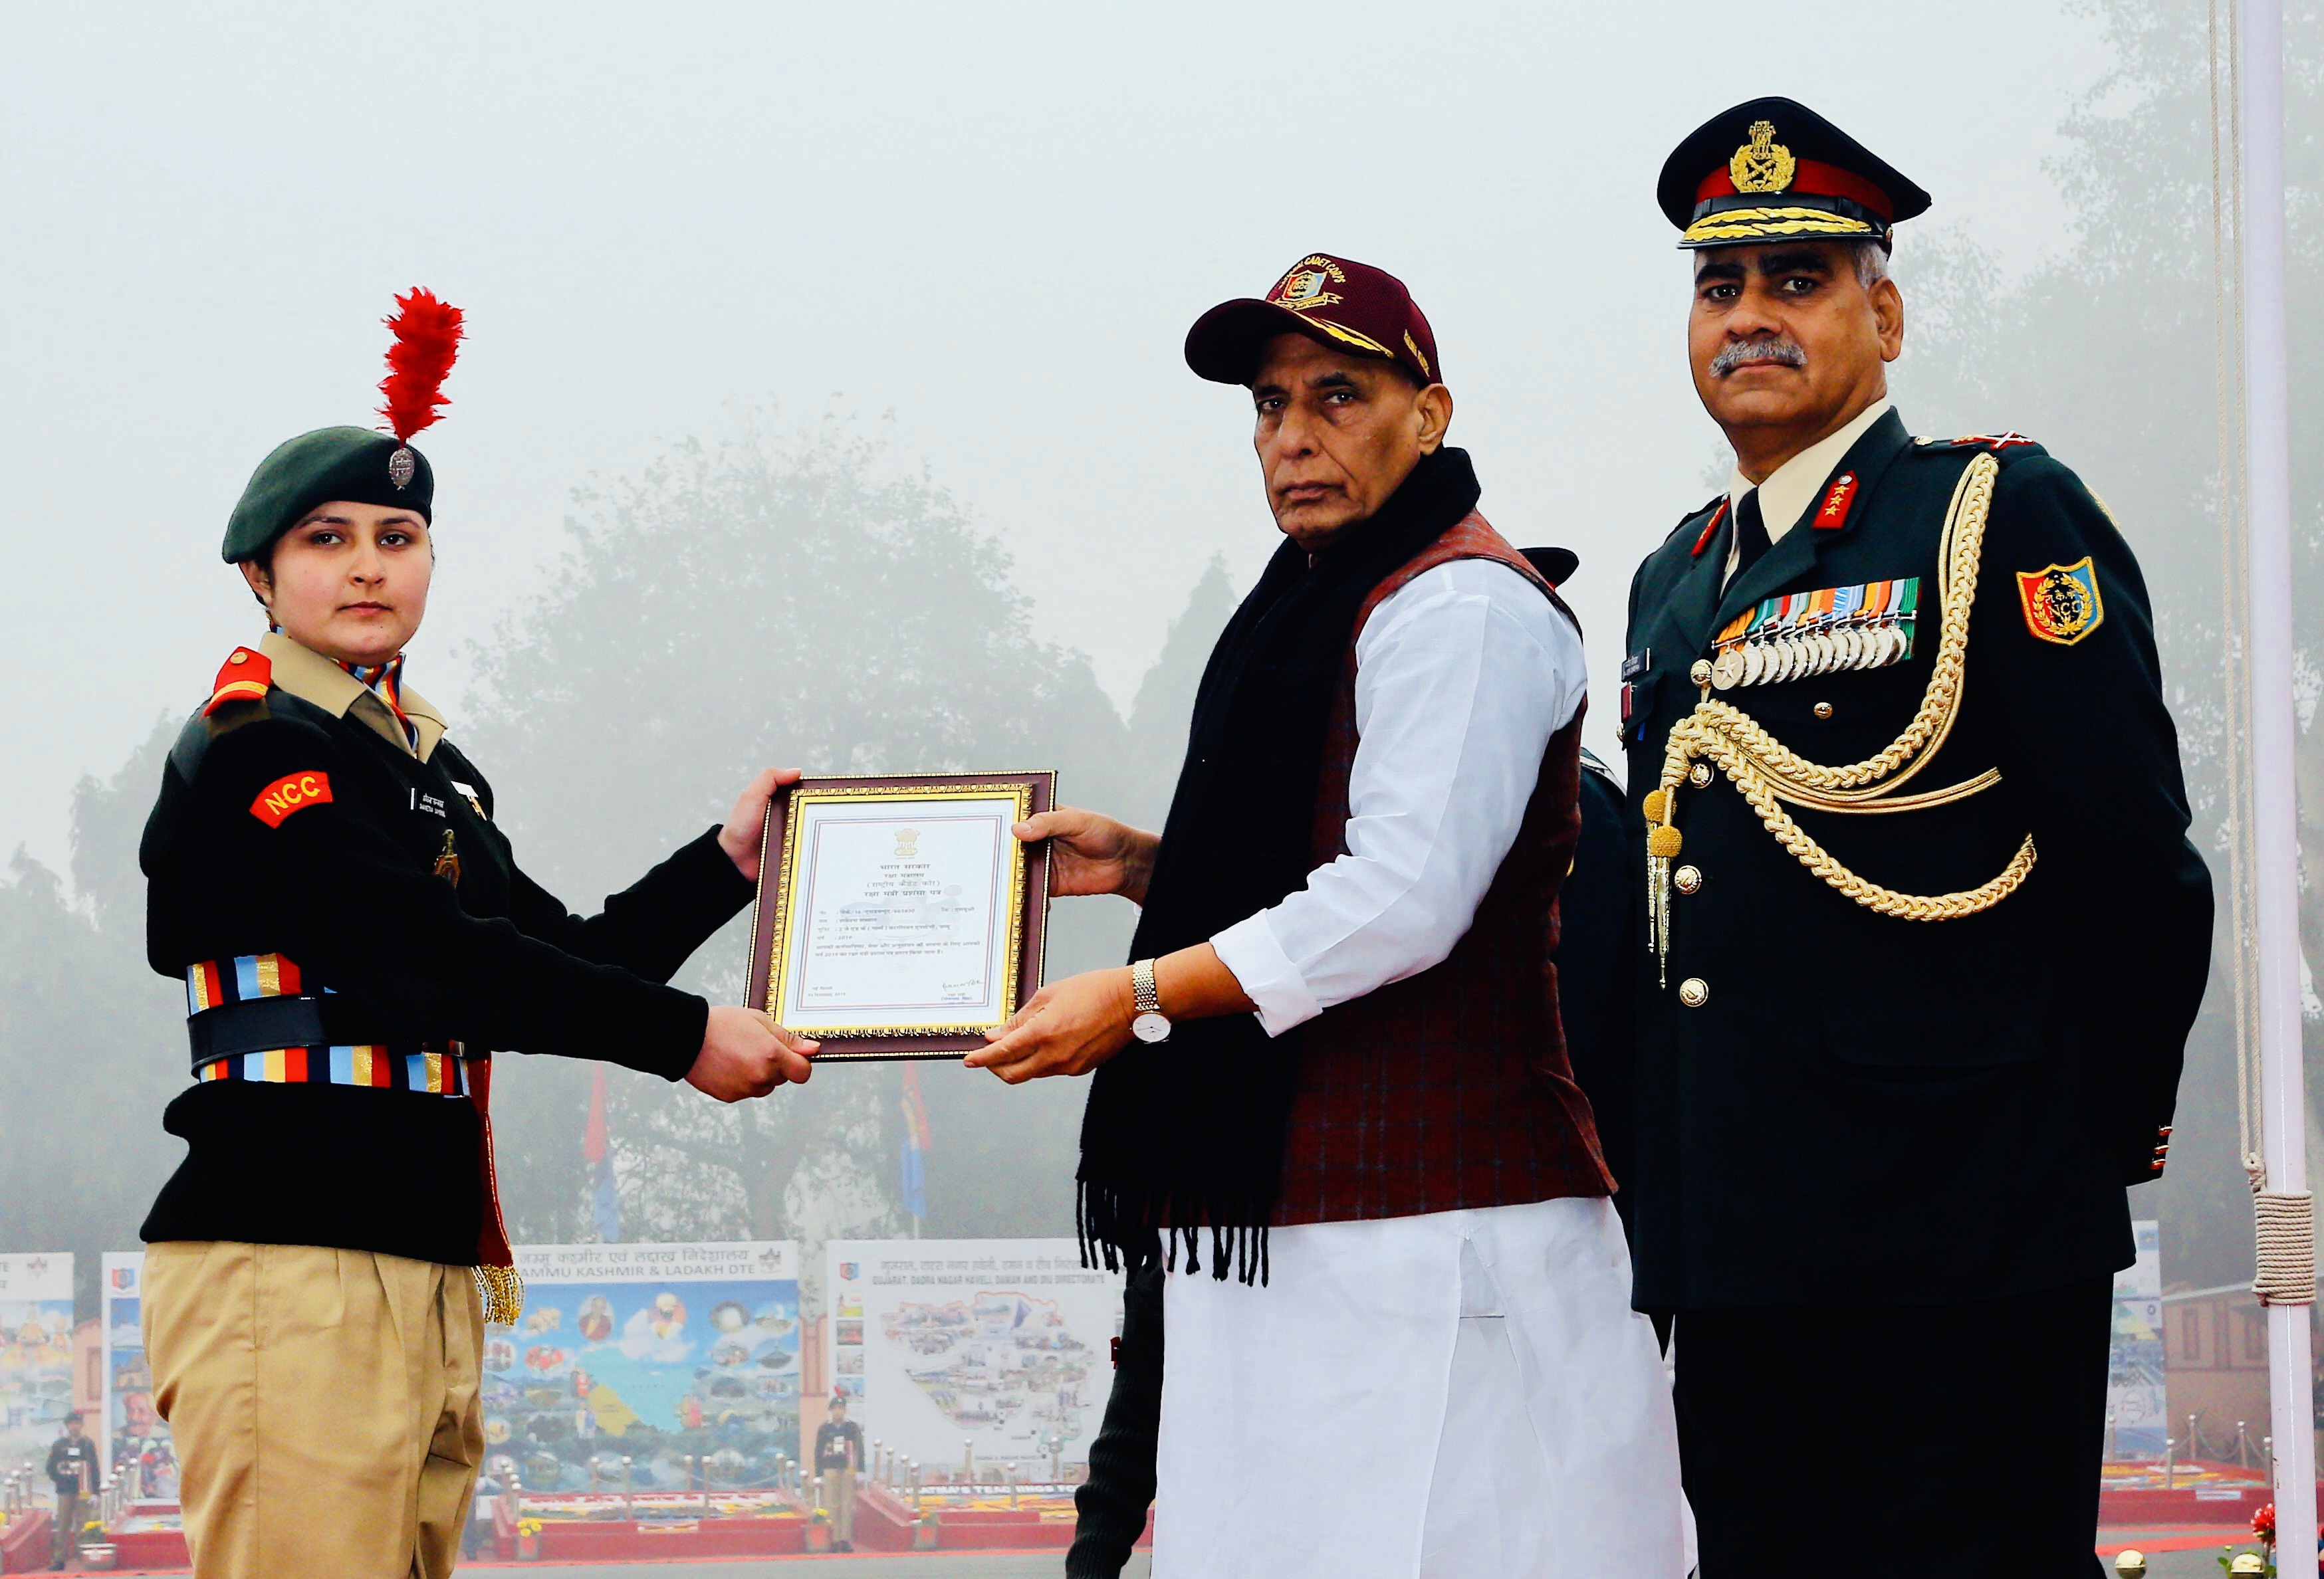 NCC contributes to nation building by transforming youth into a cohesive force: Rajnath Singh